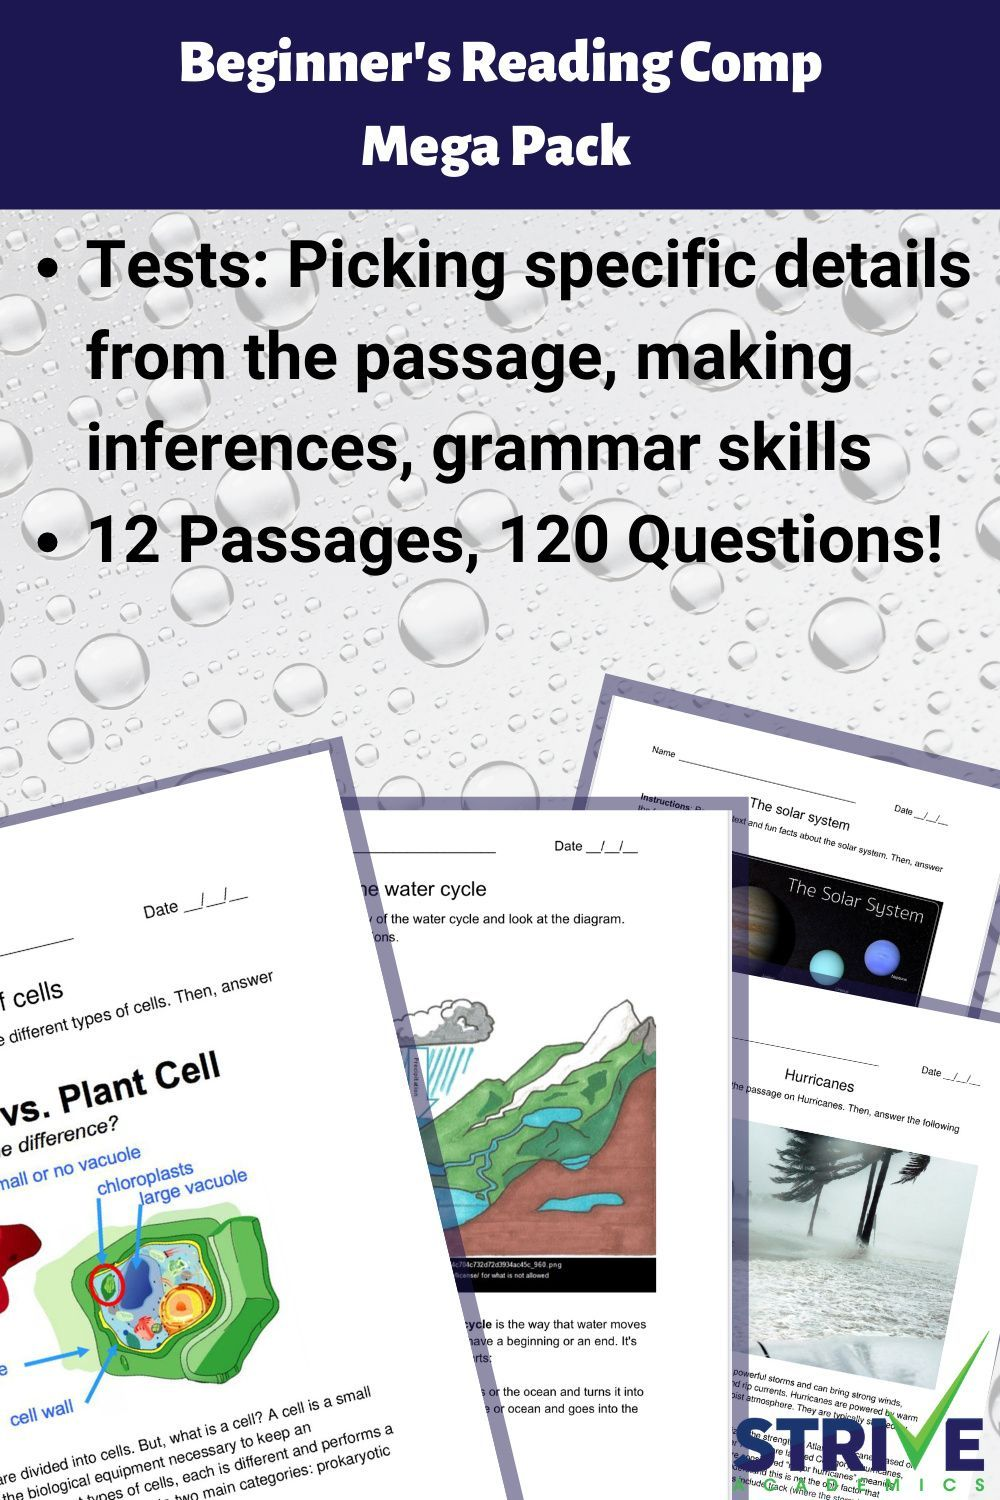 Beginner S Reading Comp Mega Pack In 2021 Reading For Beginners High Interest Reading Passages Reading Comprehension Skills [ 1500 x 1000 Pixel ]